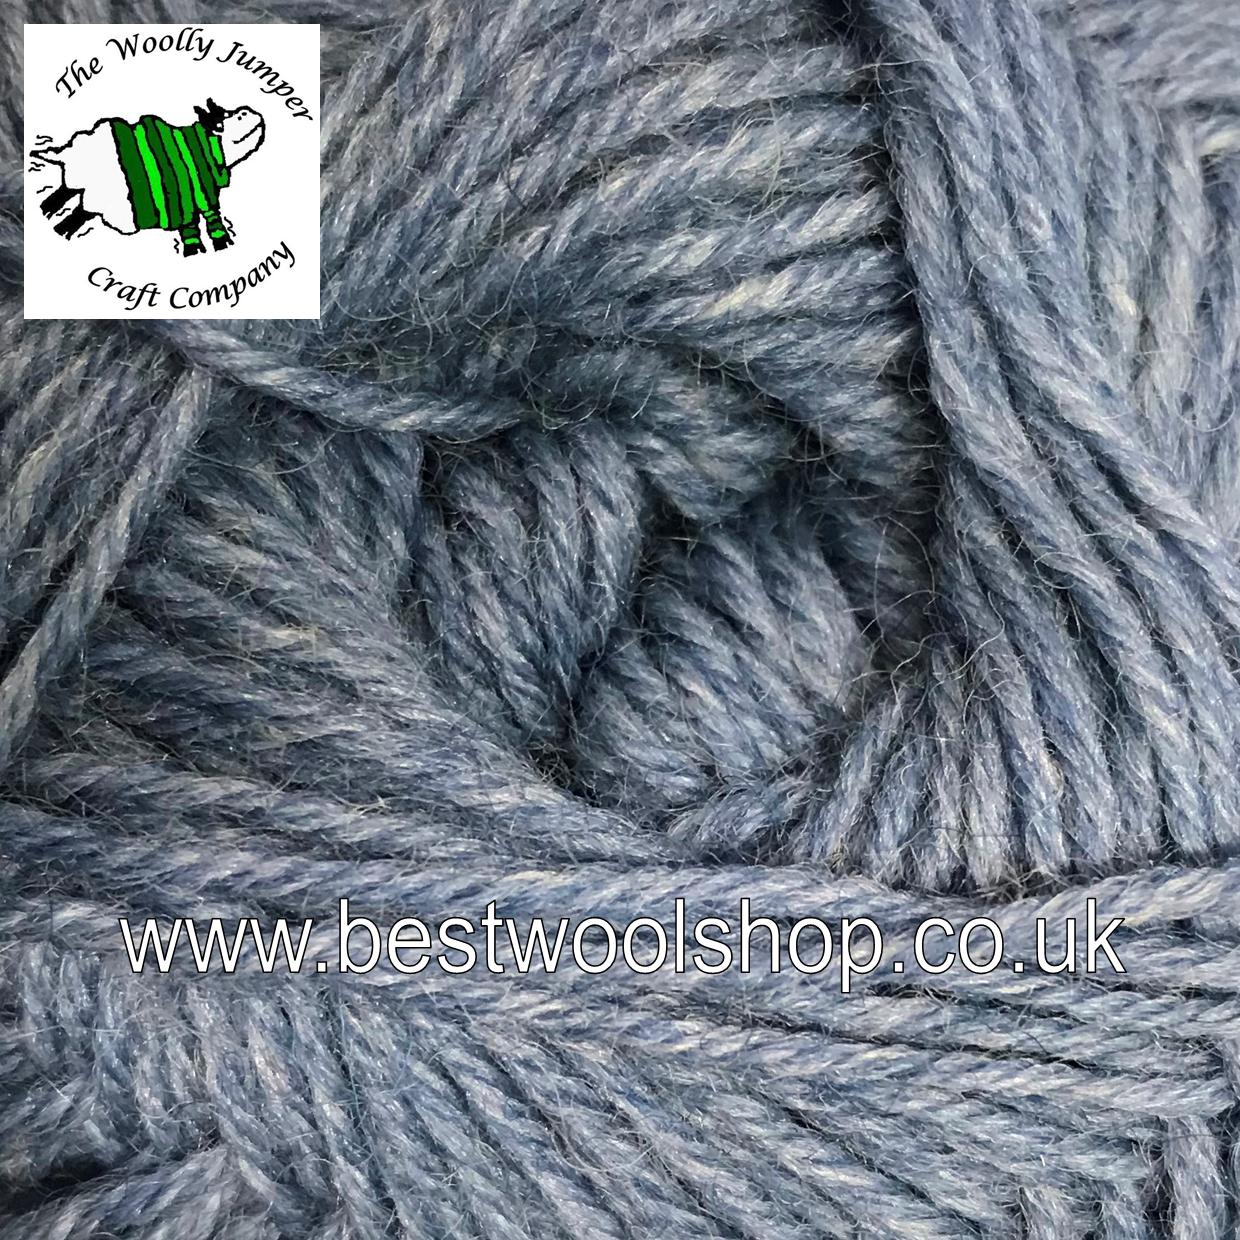 013 - LIGHT BLUE DENIM - GRUNDL HOT SOCKS UNI 50 4 PLY - KNITTING ...